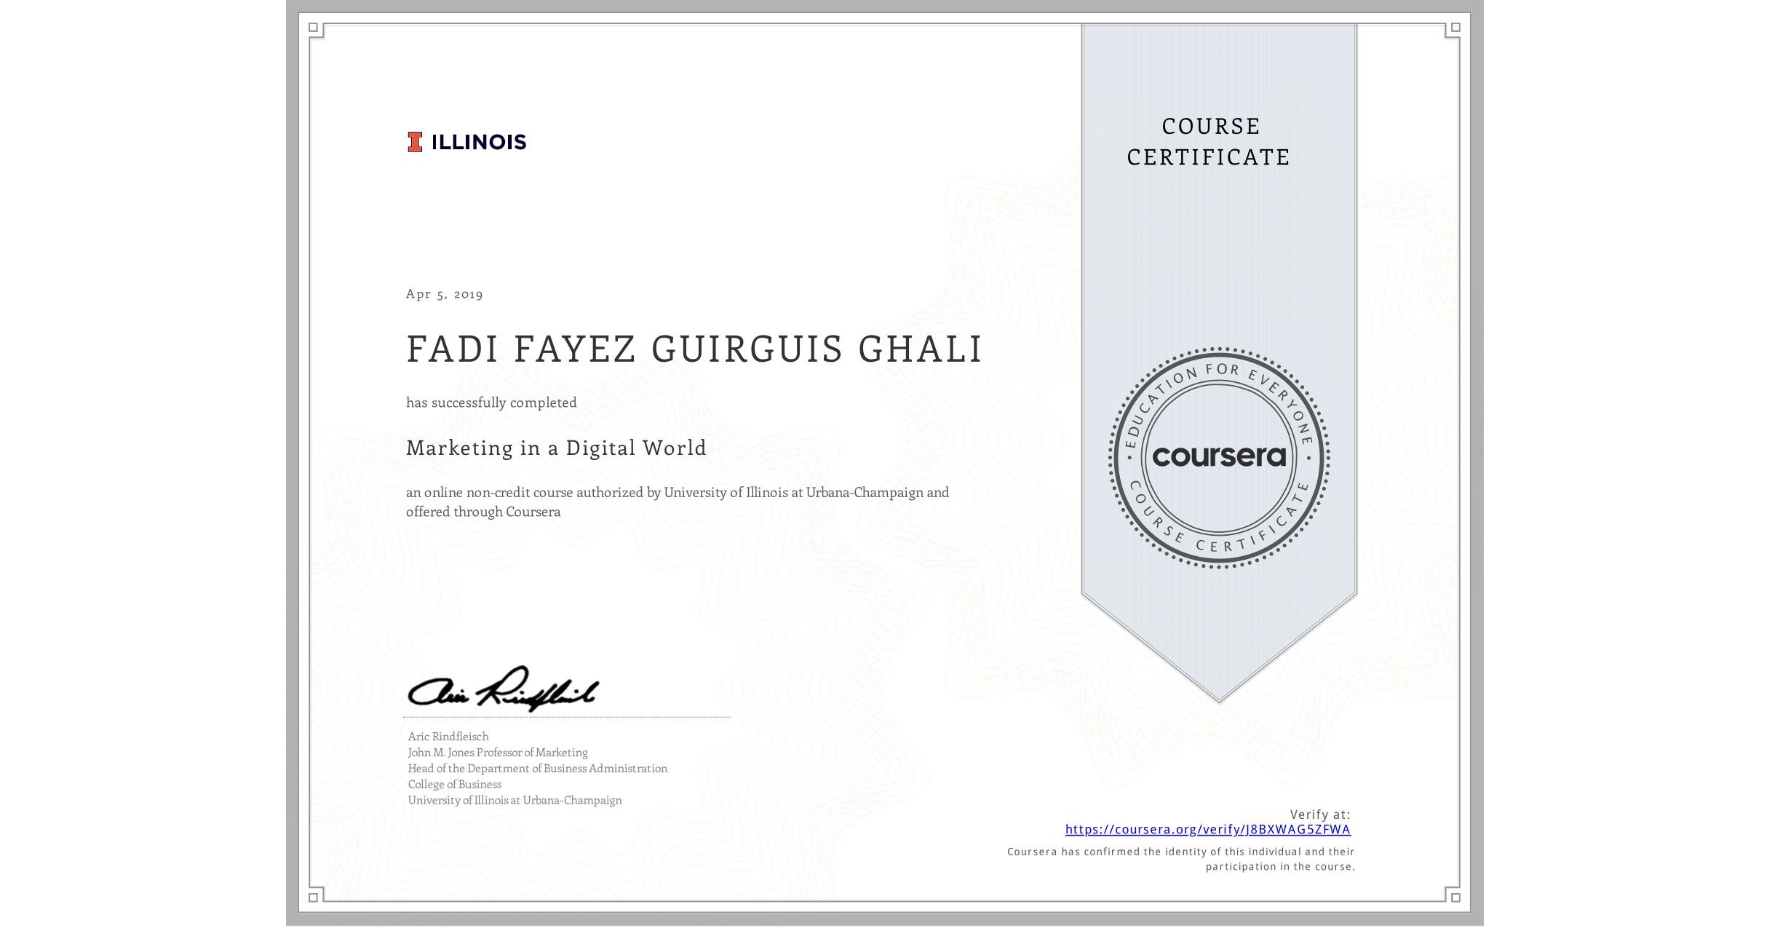 View certificate for FADI FAYEZ GUIRGUIS  GHALI, Marketing in a Digital World, an online non-credit course authorized by University of Illinois at Urbana-Champaign and offered through Coursera